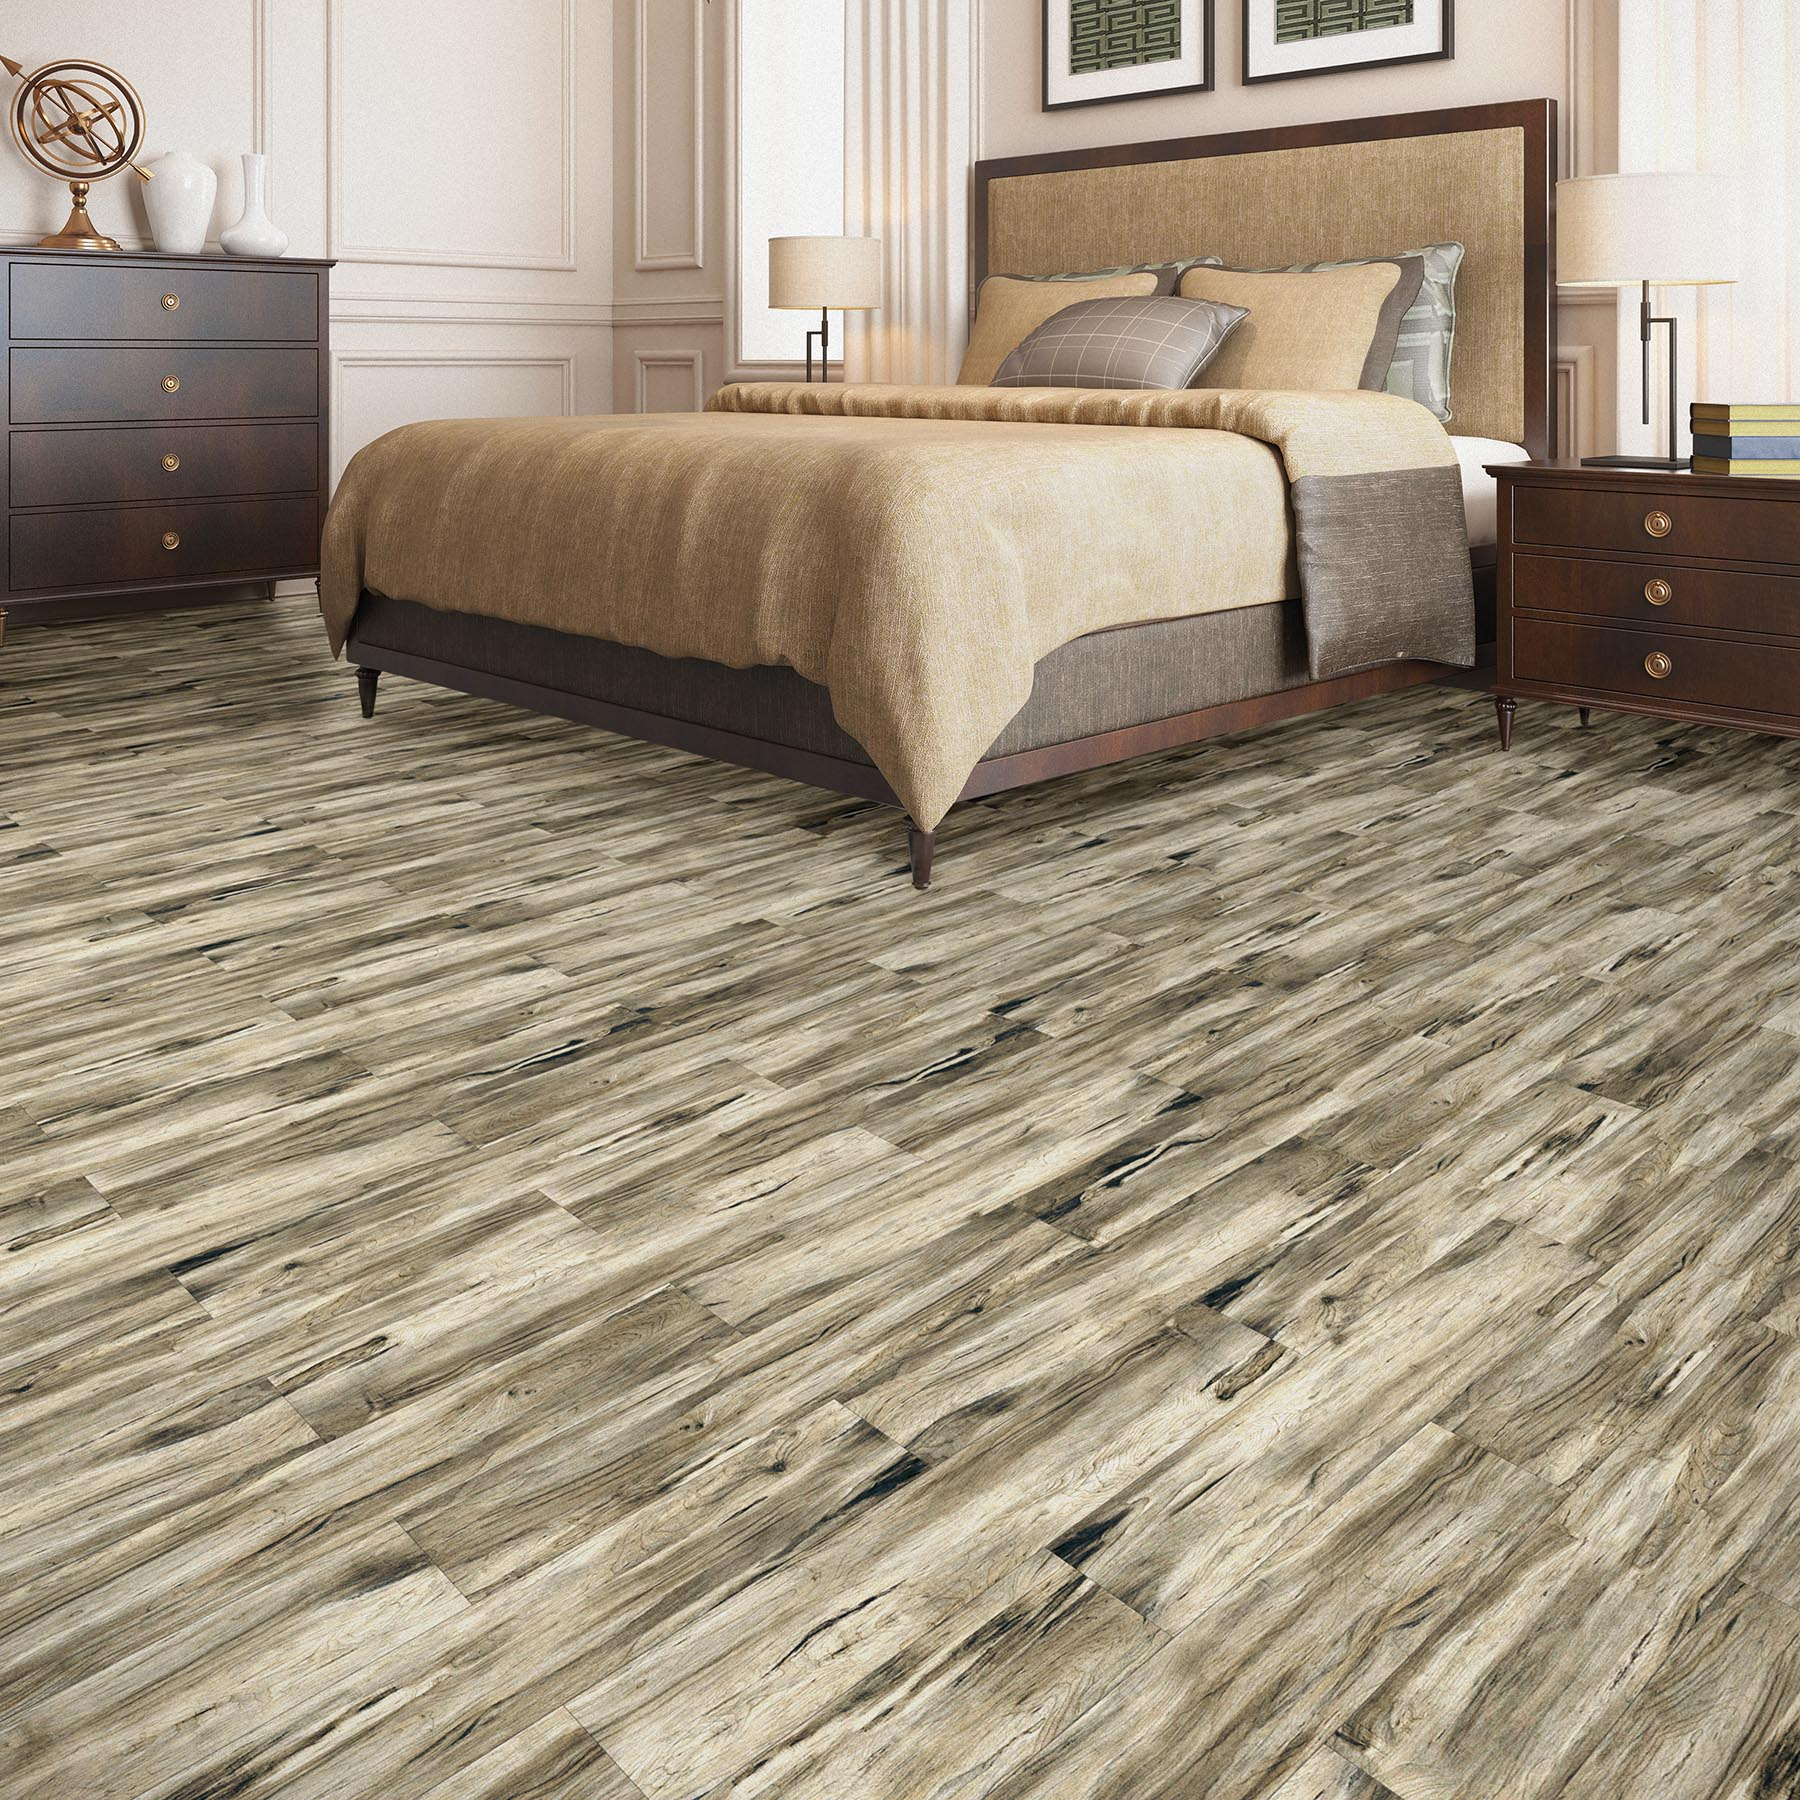 Riverwood Taupe Plank Lifestyle.jpg